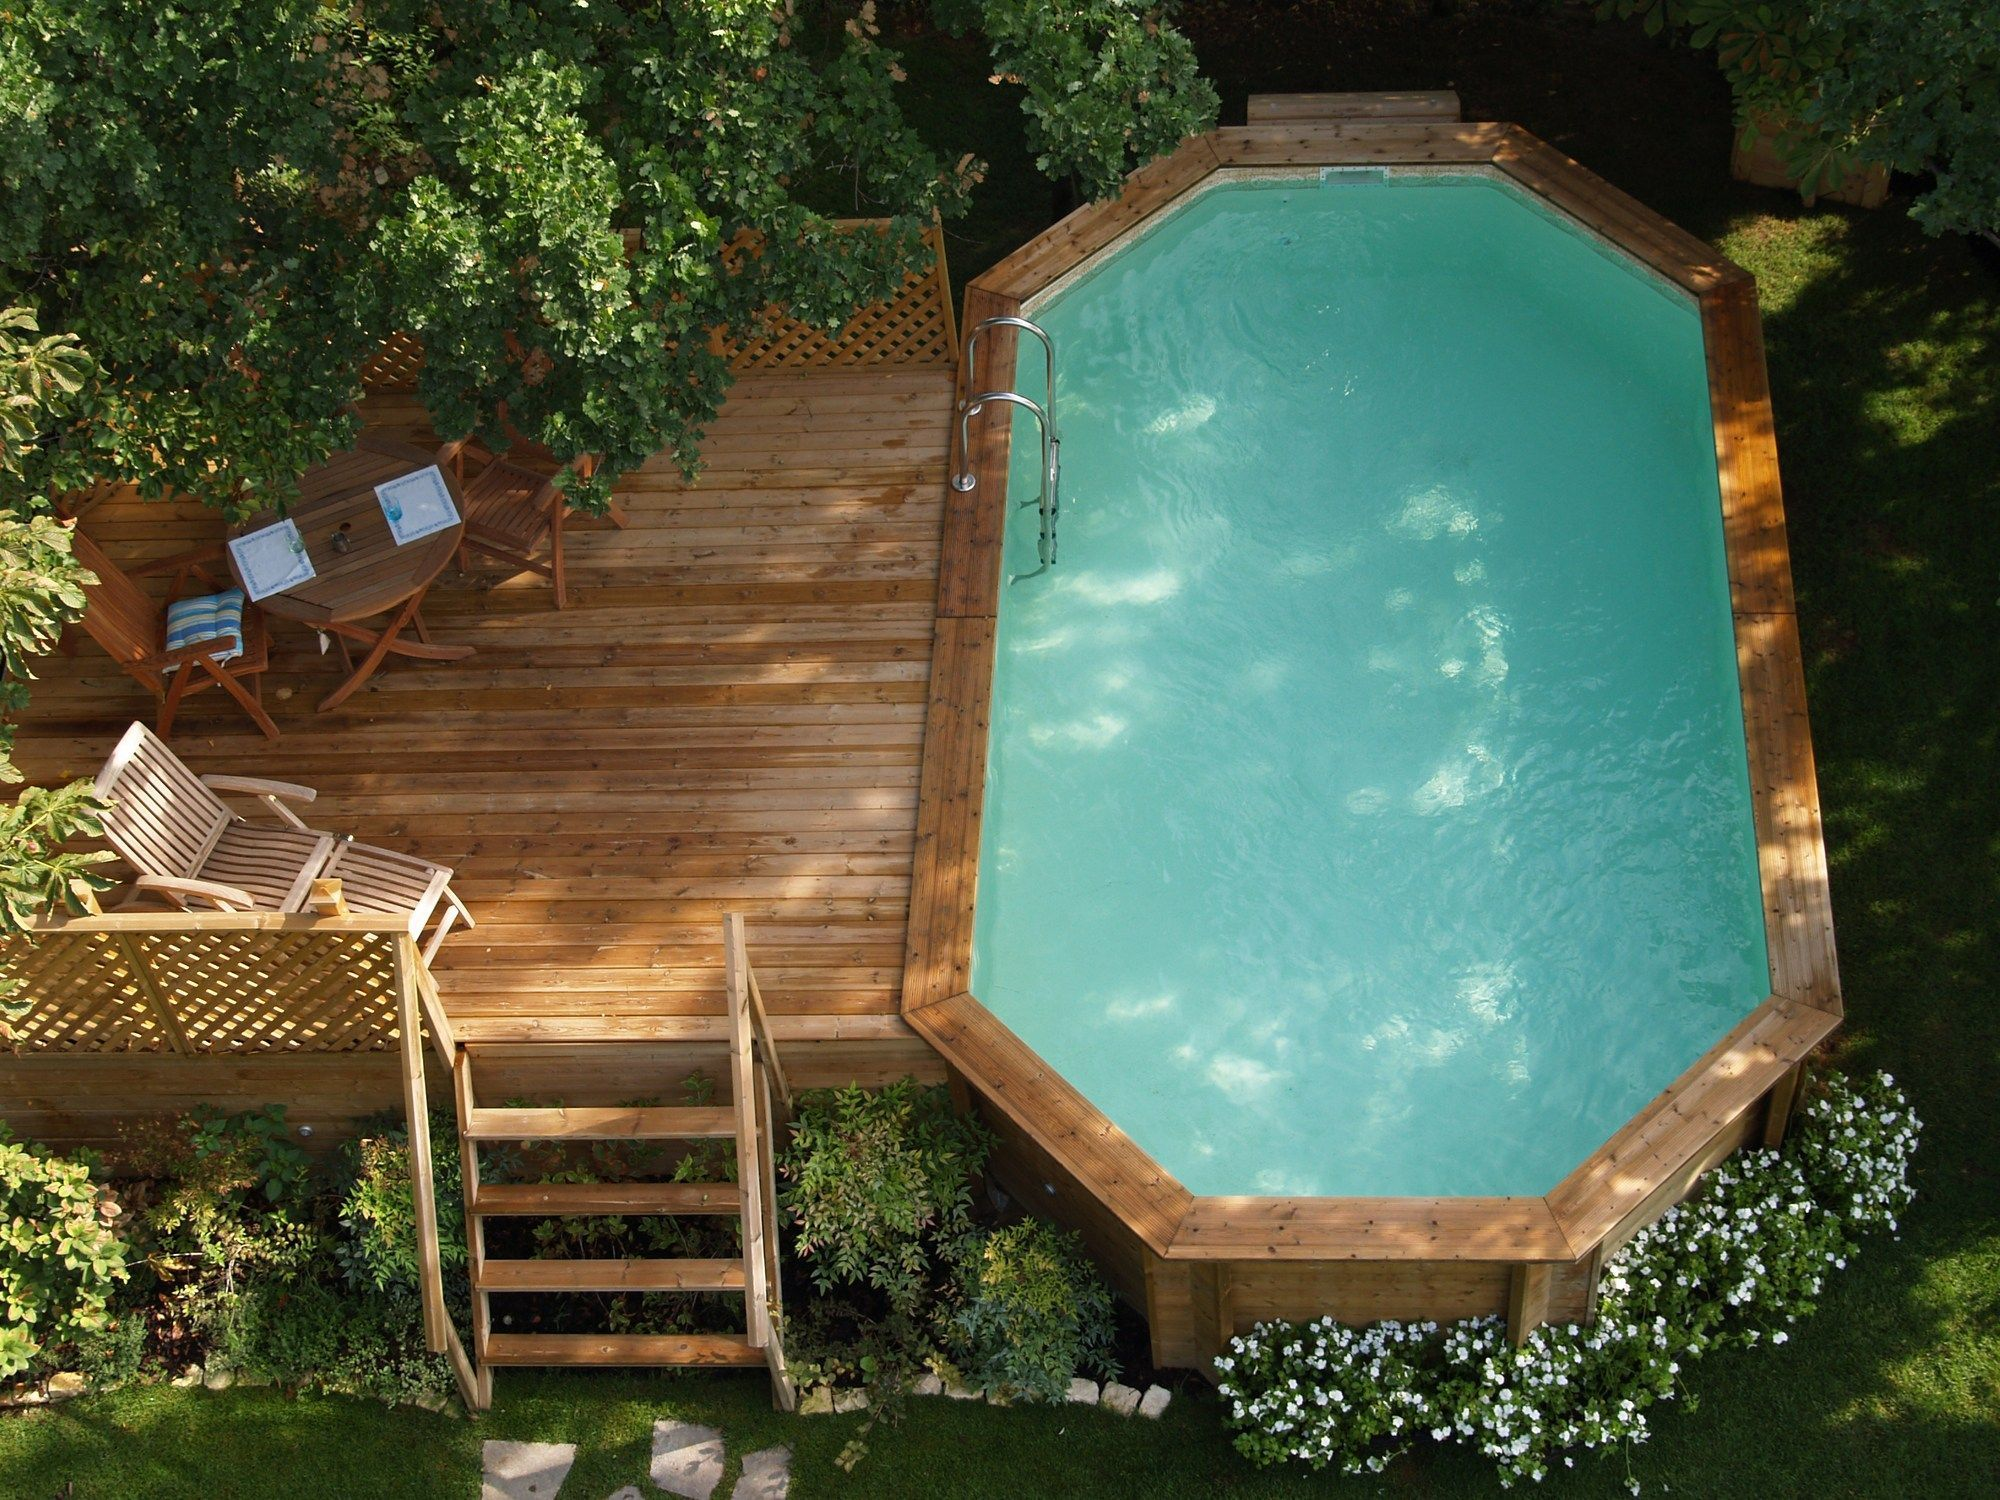 Affordable Backyard Landscaping Ideas You Can Look Into In 2020 Backyard Pool Landscaping Swimming Pools Backyard Backyard Pool